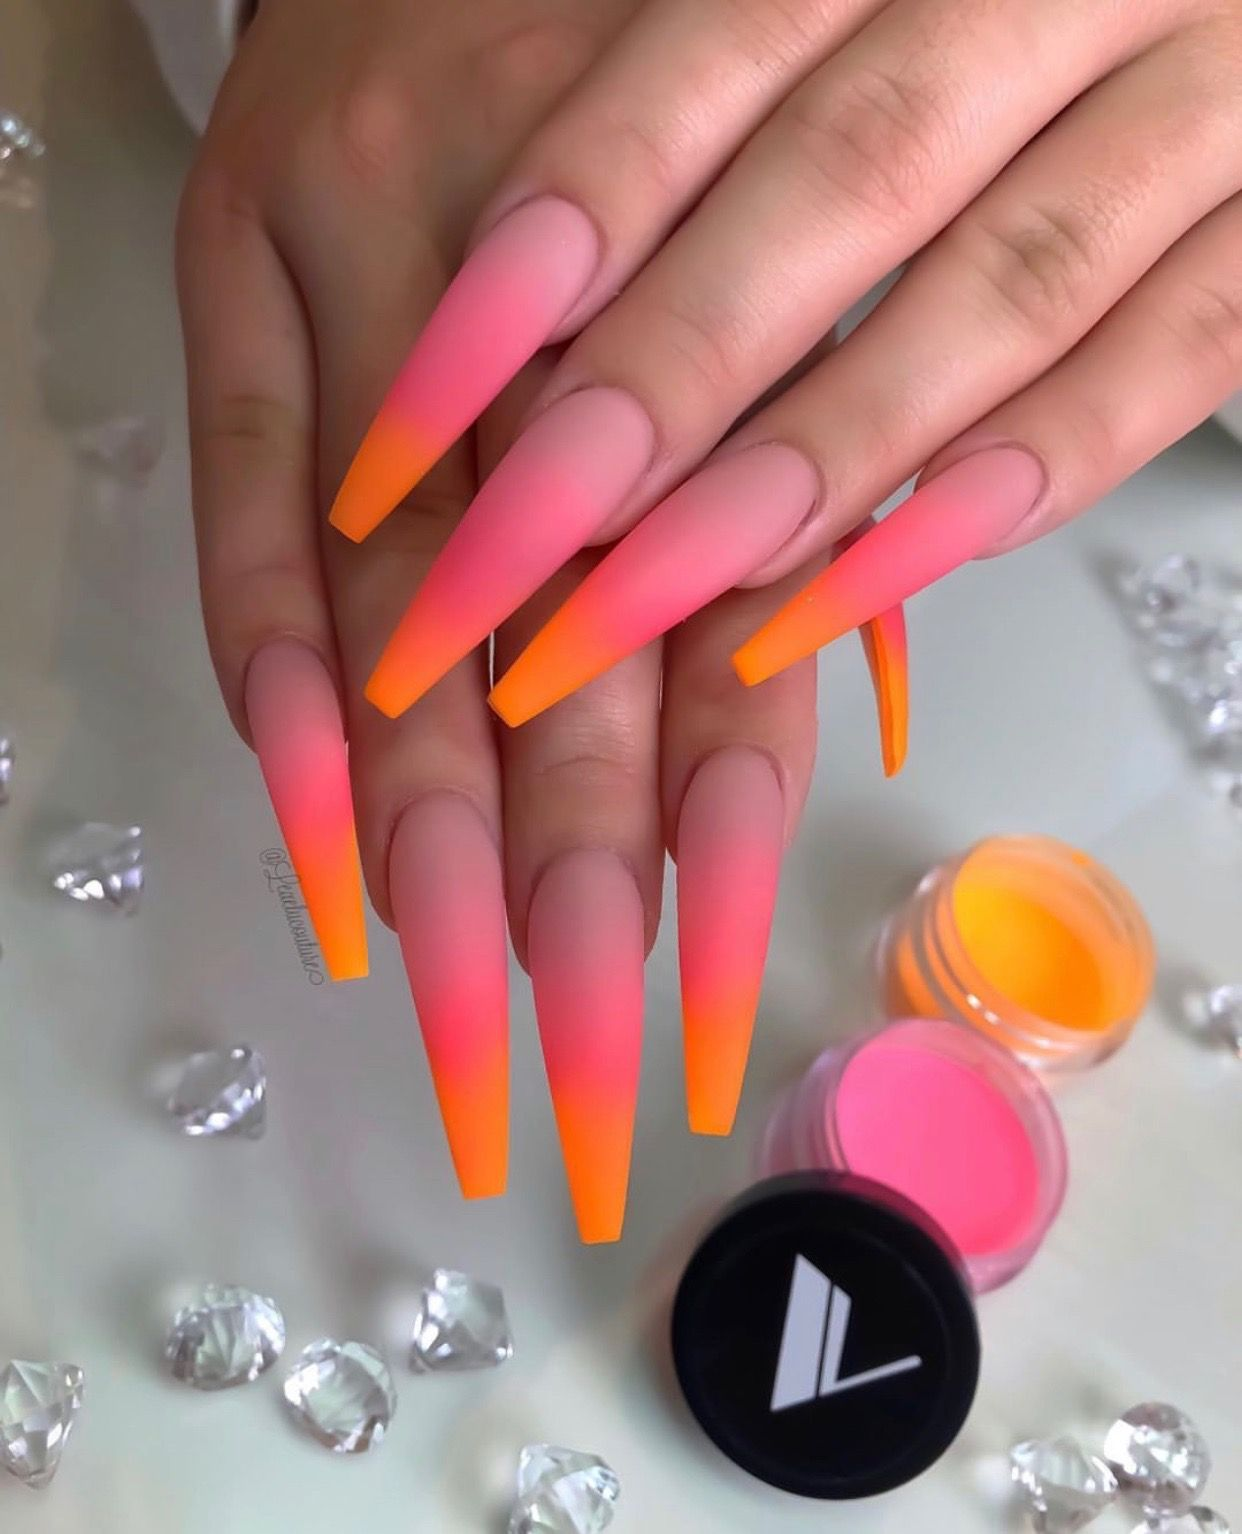 Pin By Filtermint Snapchat Filters On Summer Manicure Ombre Acrylic Nails Long Acrylic Nails Acrylic Nails